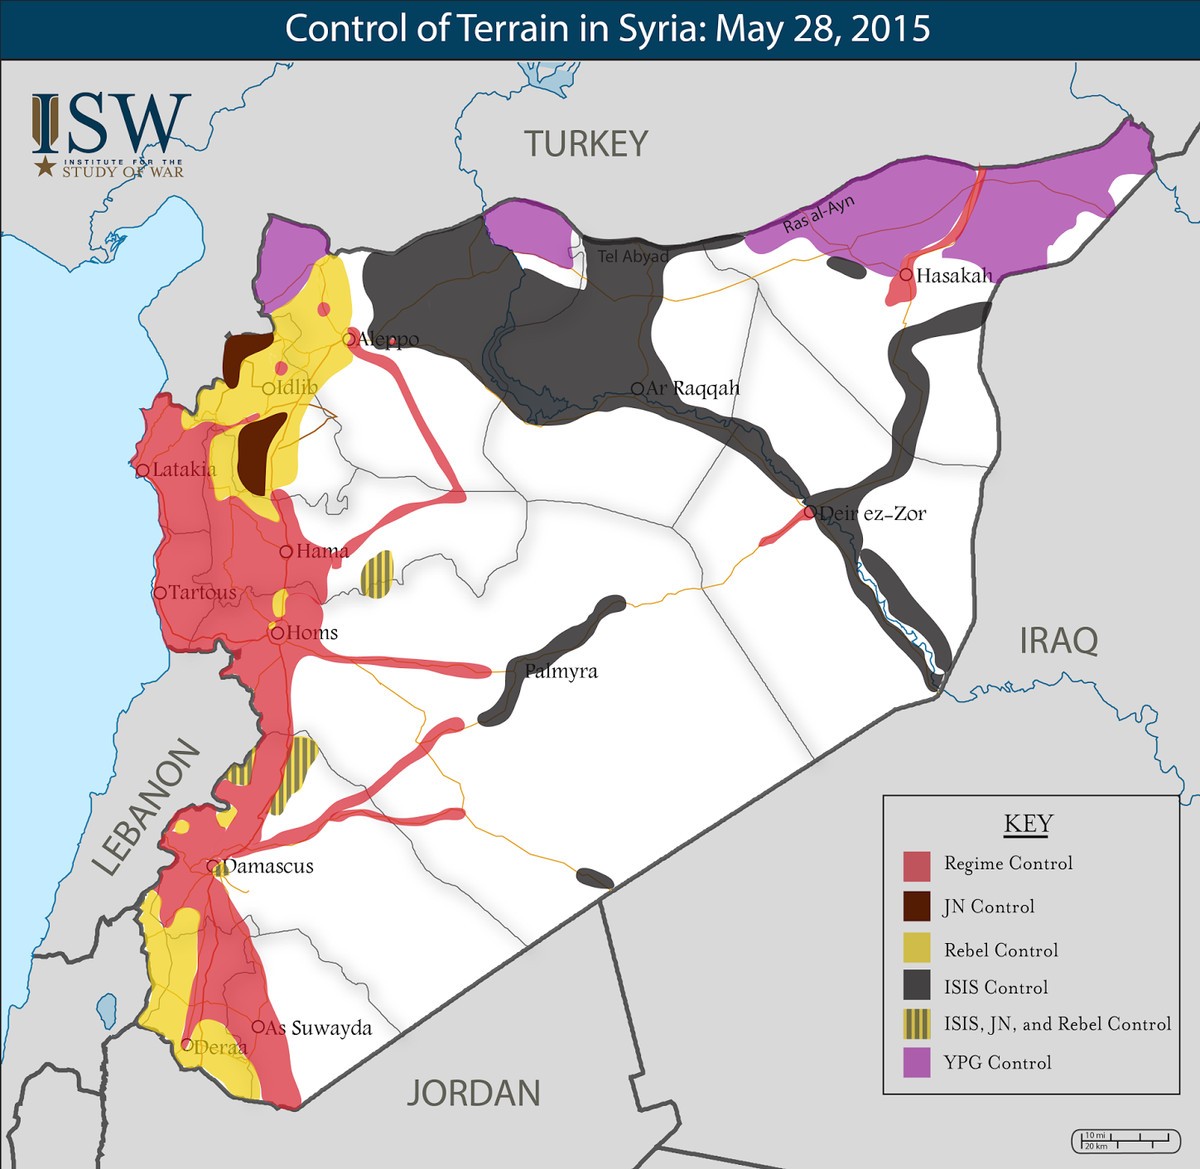 syria map control may 28